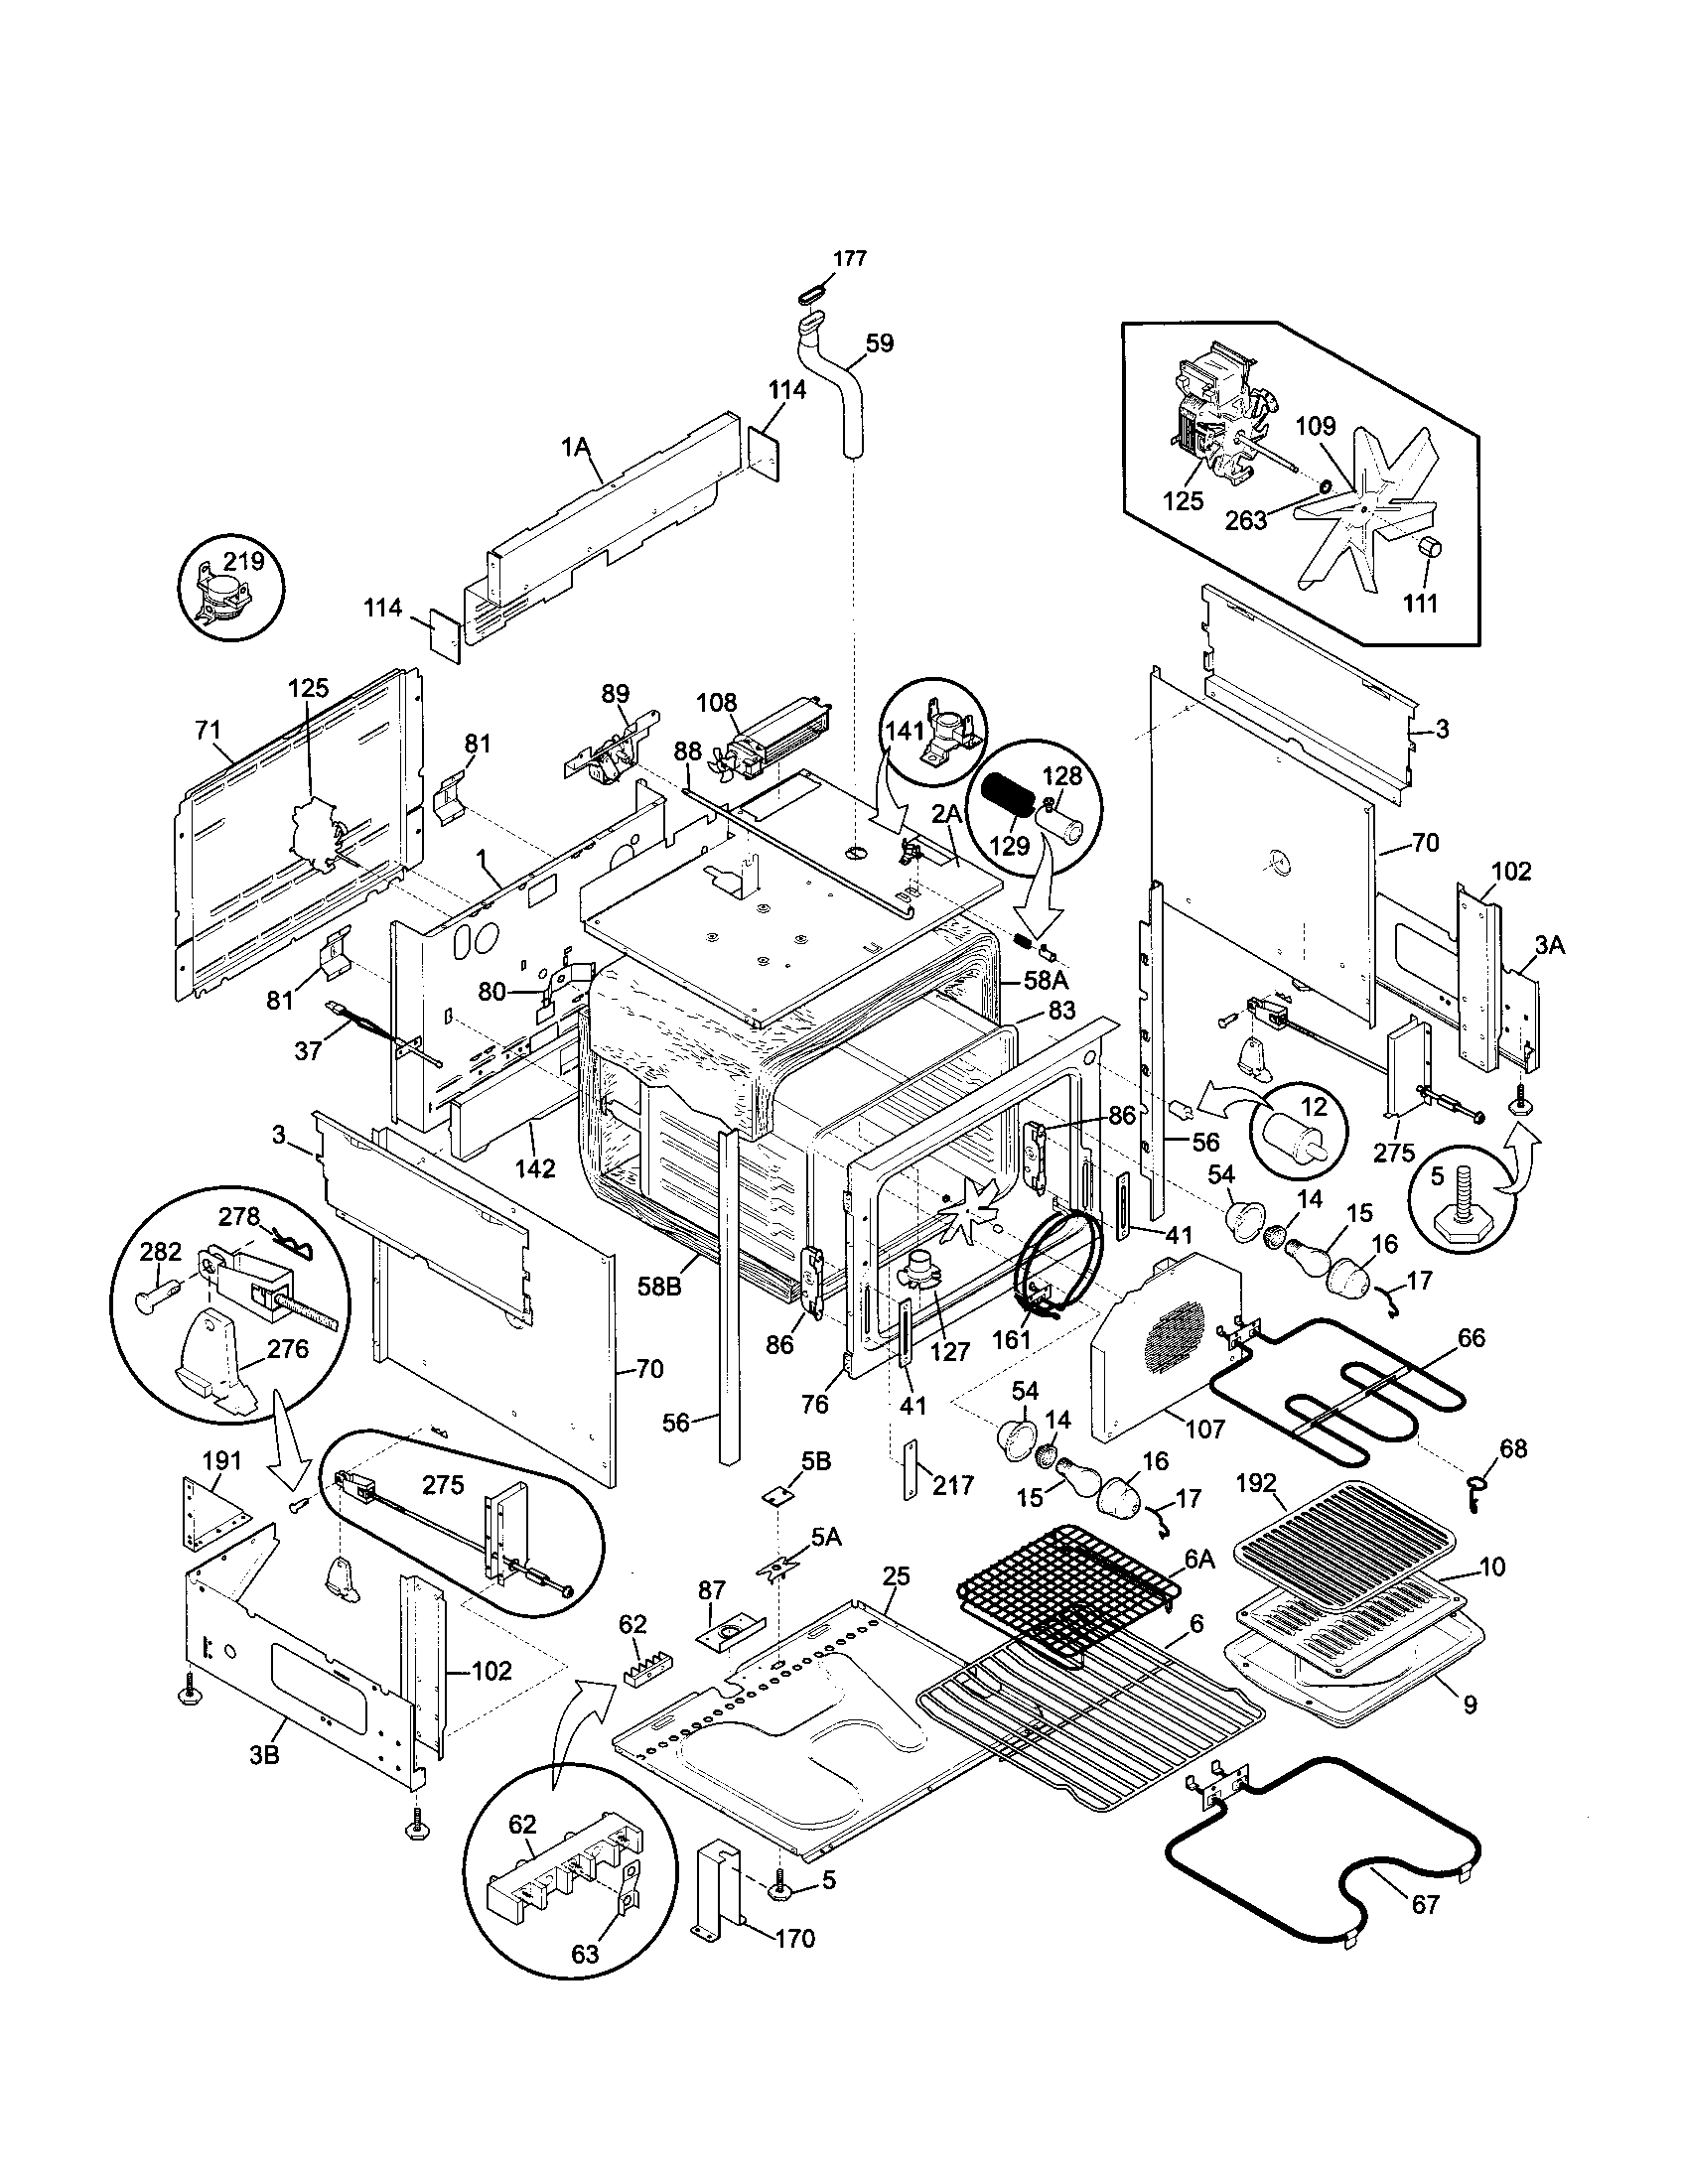 kenmore 80 series washer manual pdf